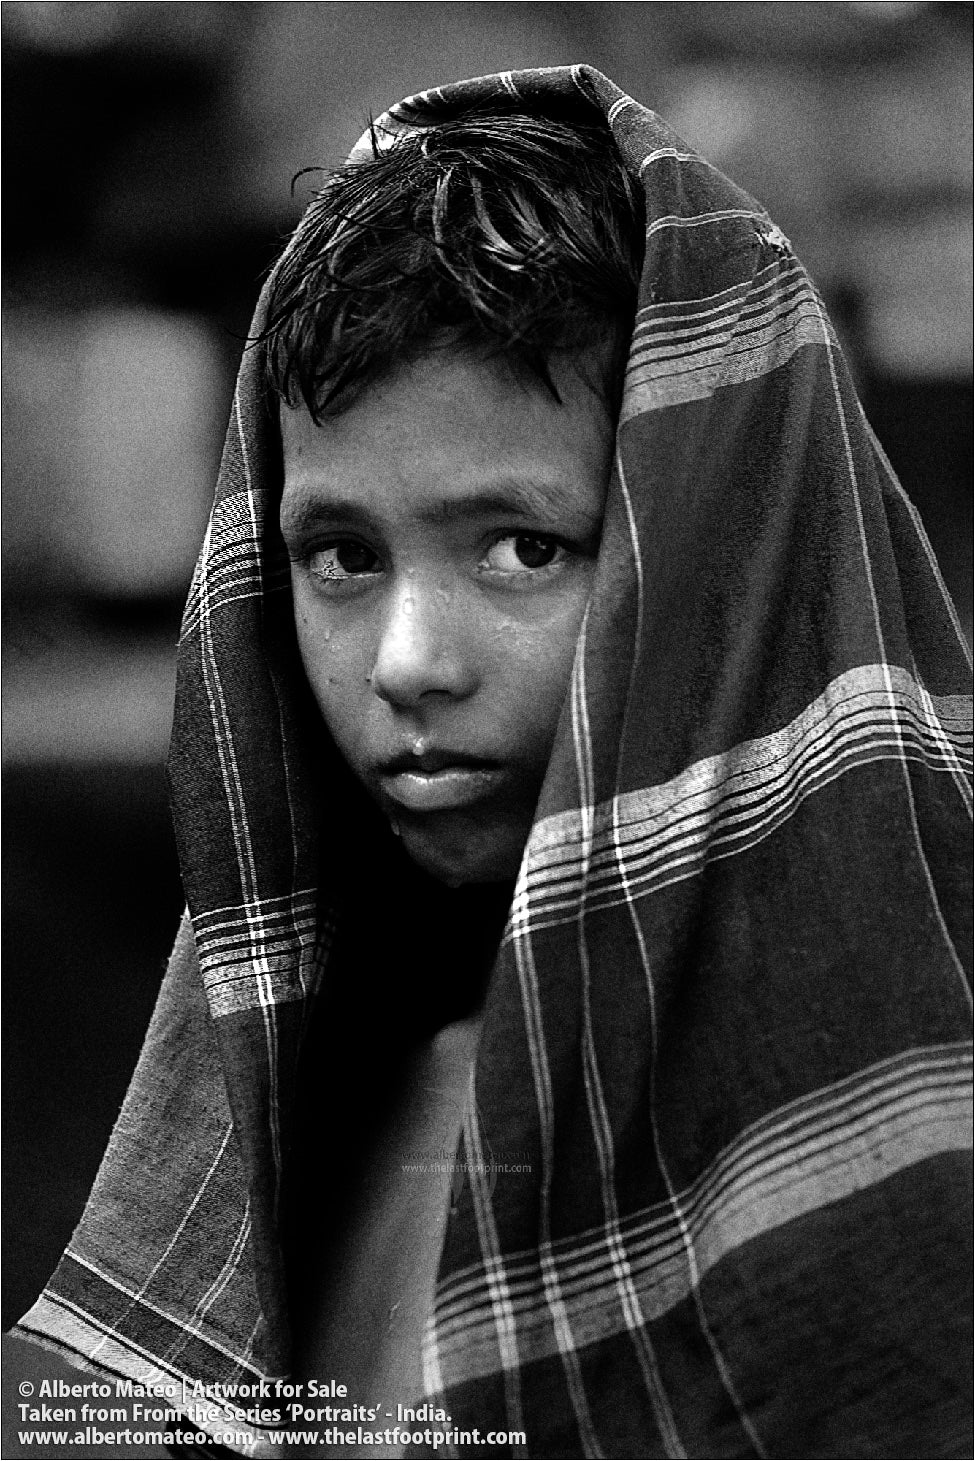 Portrait of Muslim Boy, Ballia, Uttar Pradesh, India.